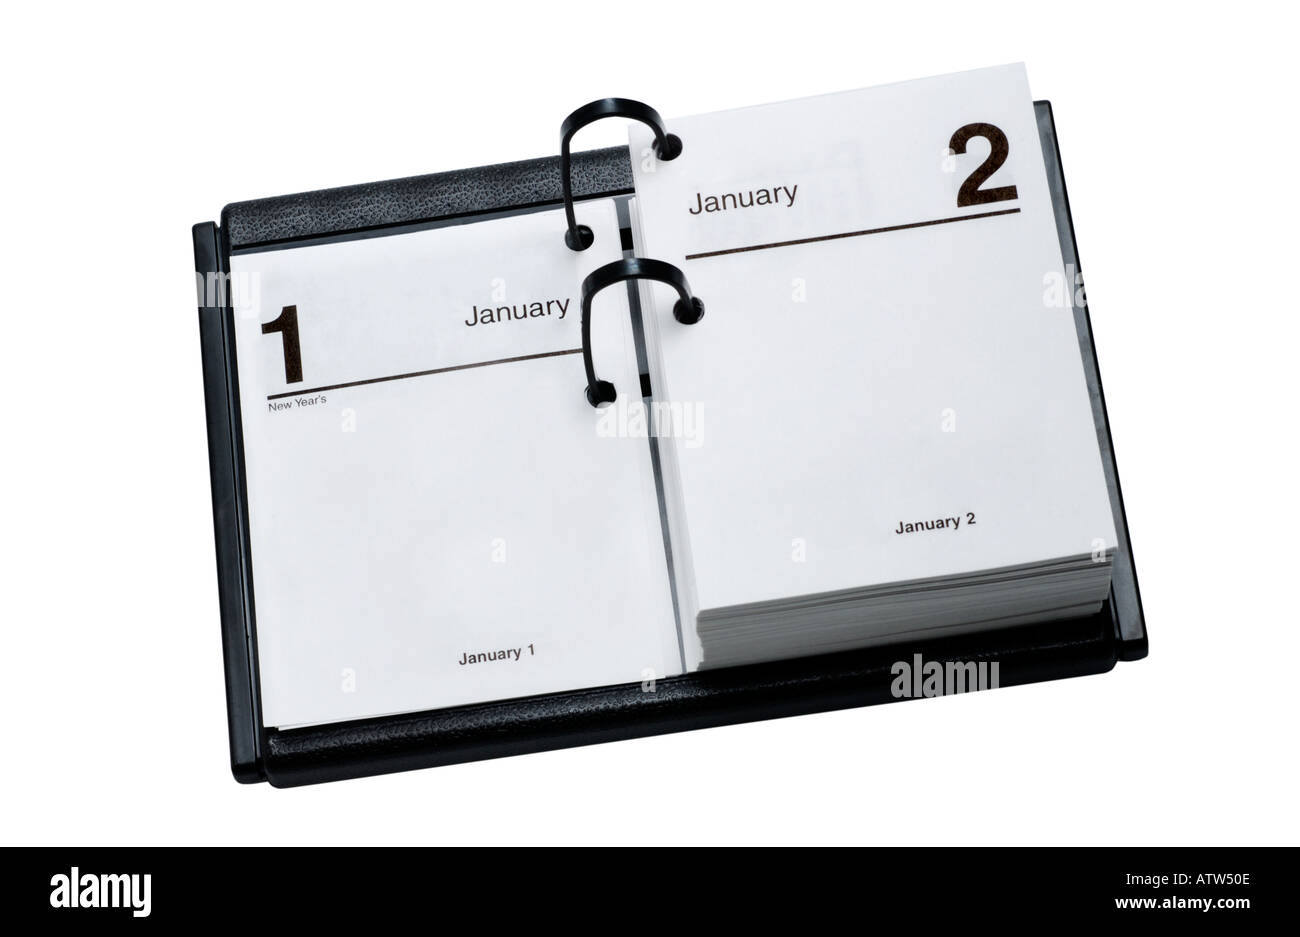 Blank Desk Calendar open to January 1st New Years Day - Stock Image